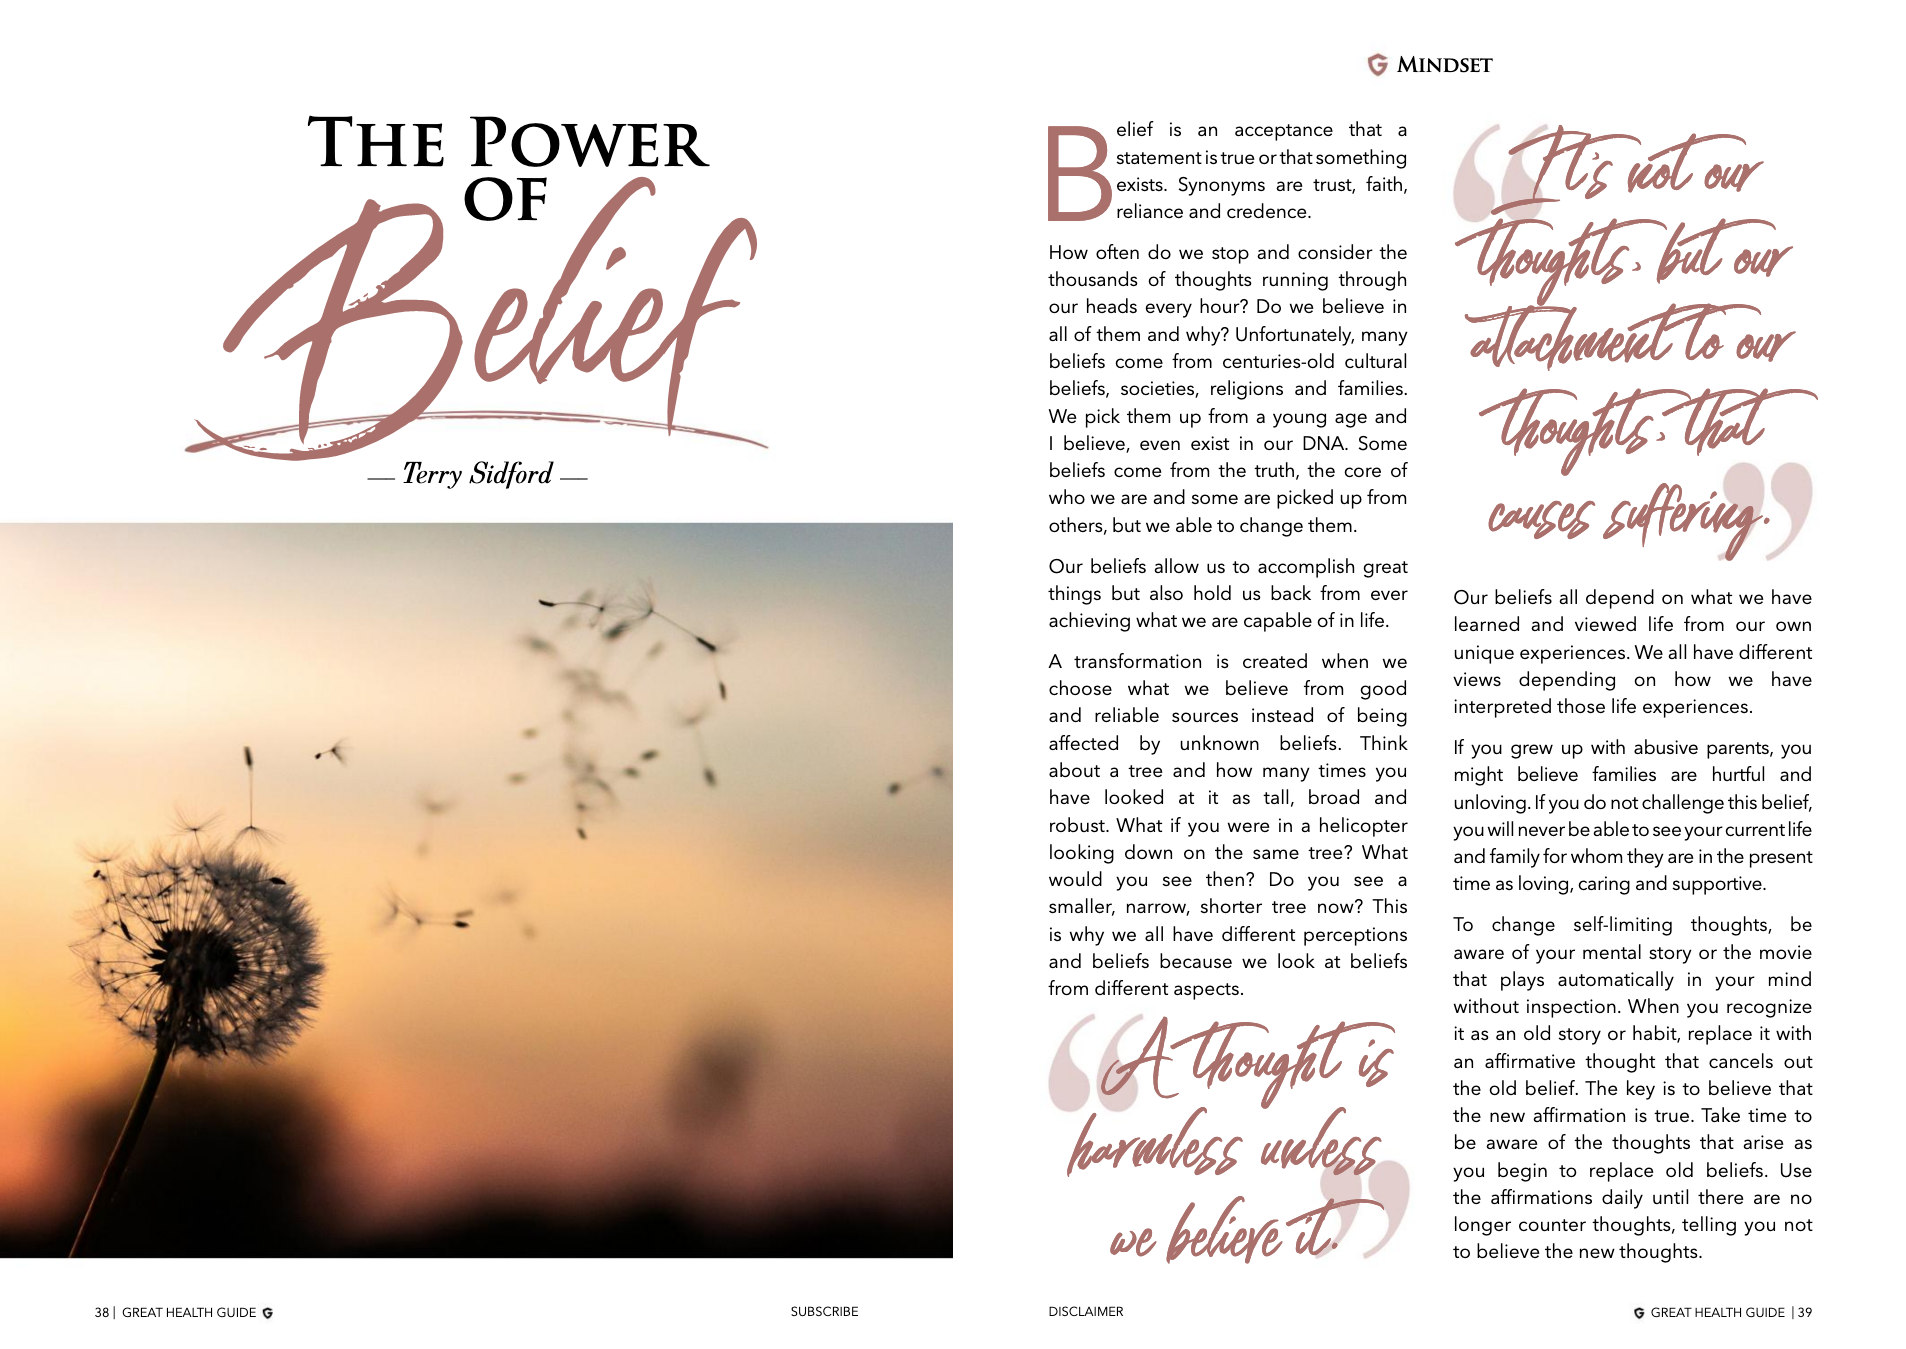 The Power of Belief